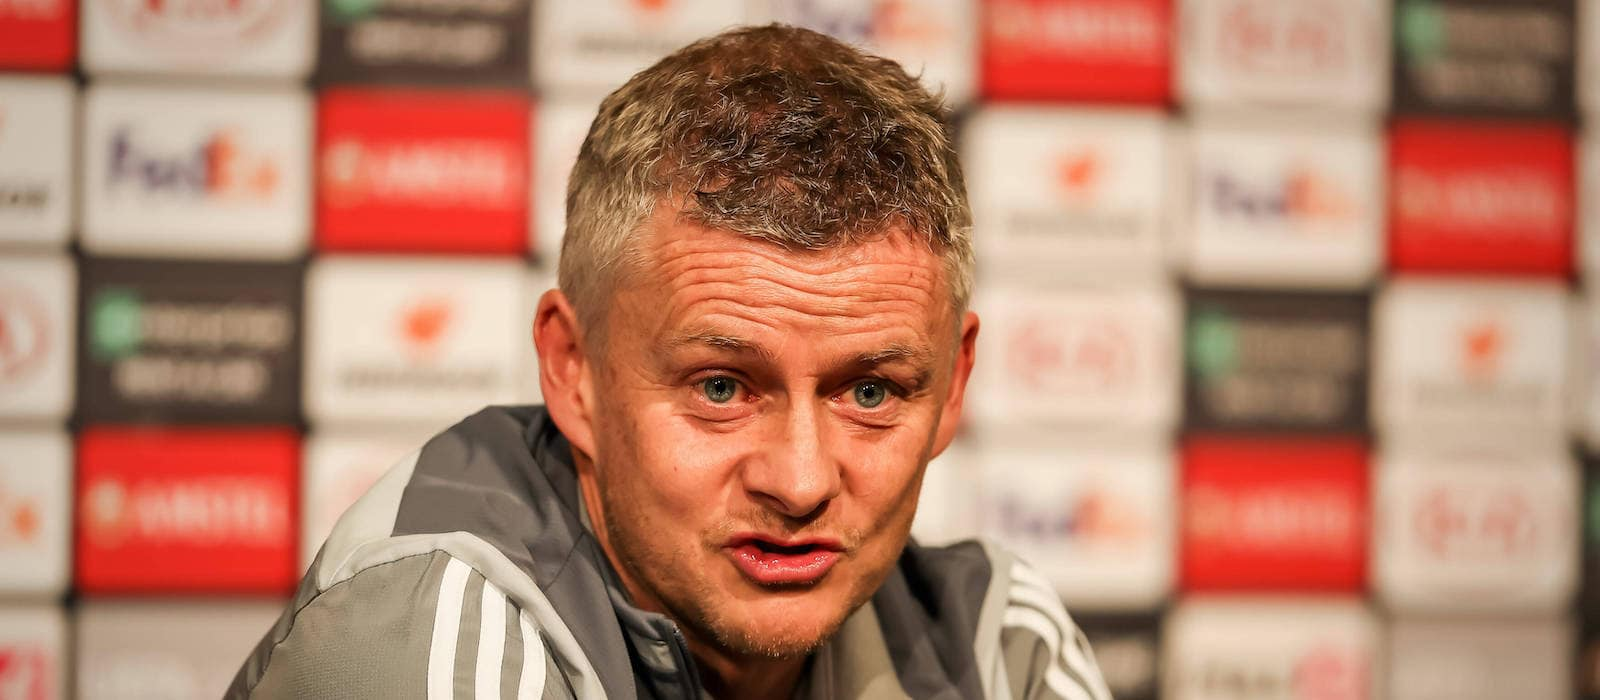 Ole Gunnar Solskjaer delivers amazing team news ahead of PSG game